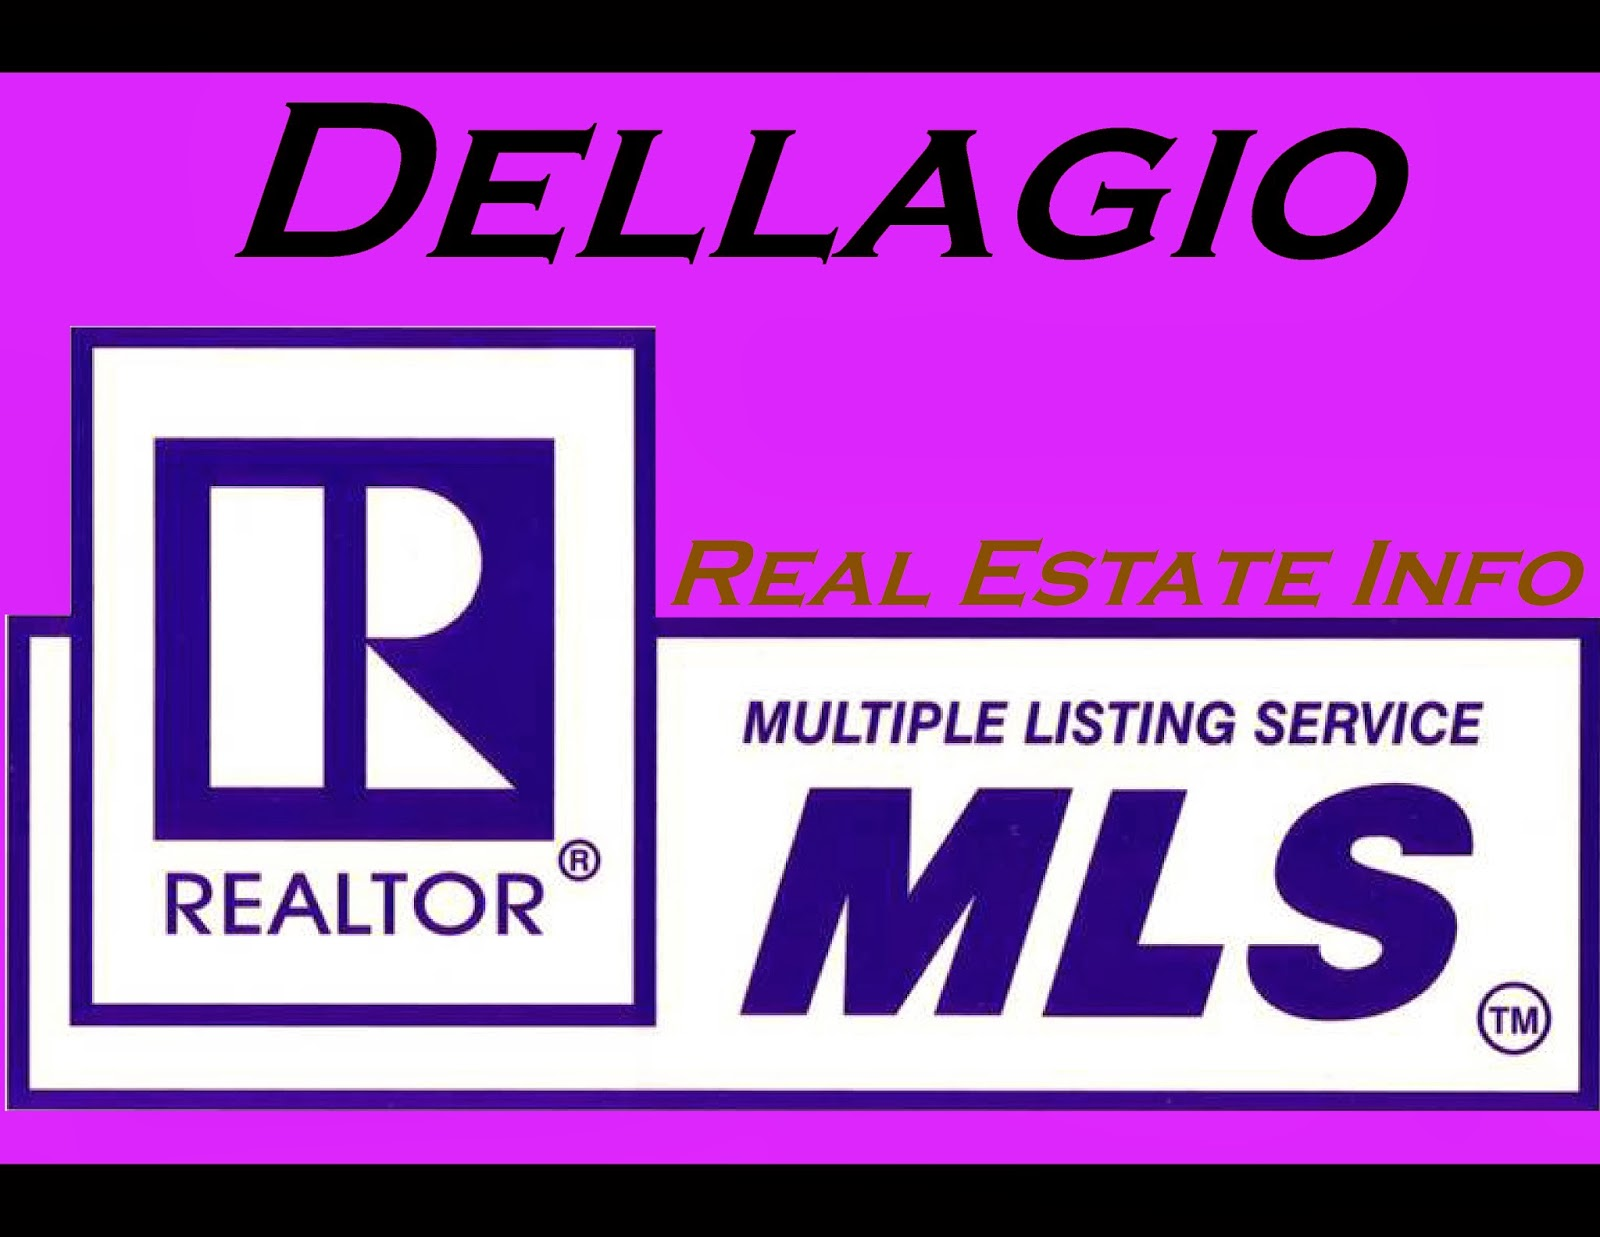 http://orlandodrphillipsrealestate.com/COMMUNITIES/Dr-Phillips/Dellagio-By-Park-Square-Homes